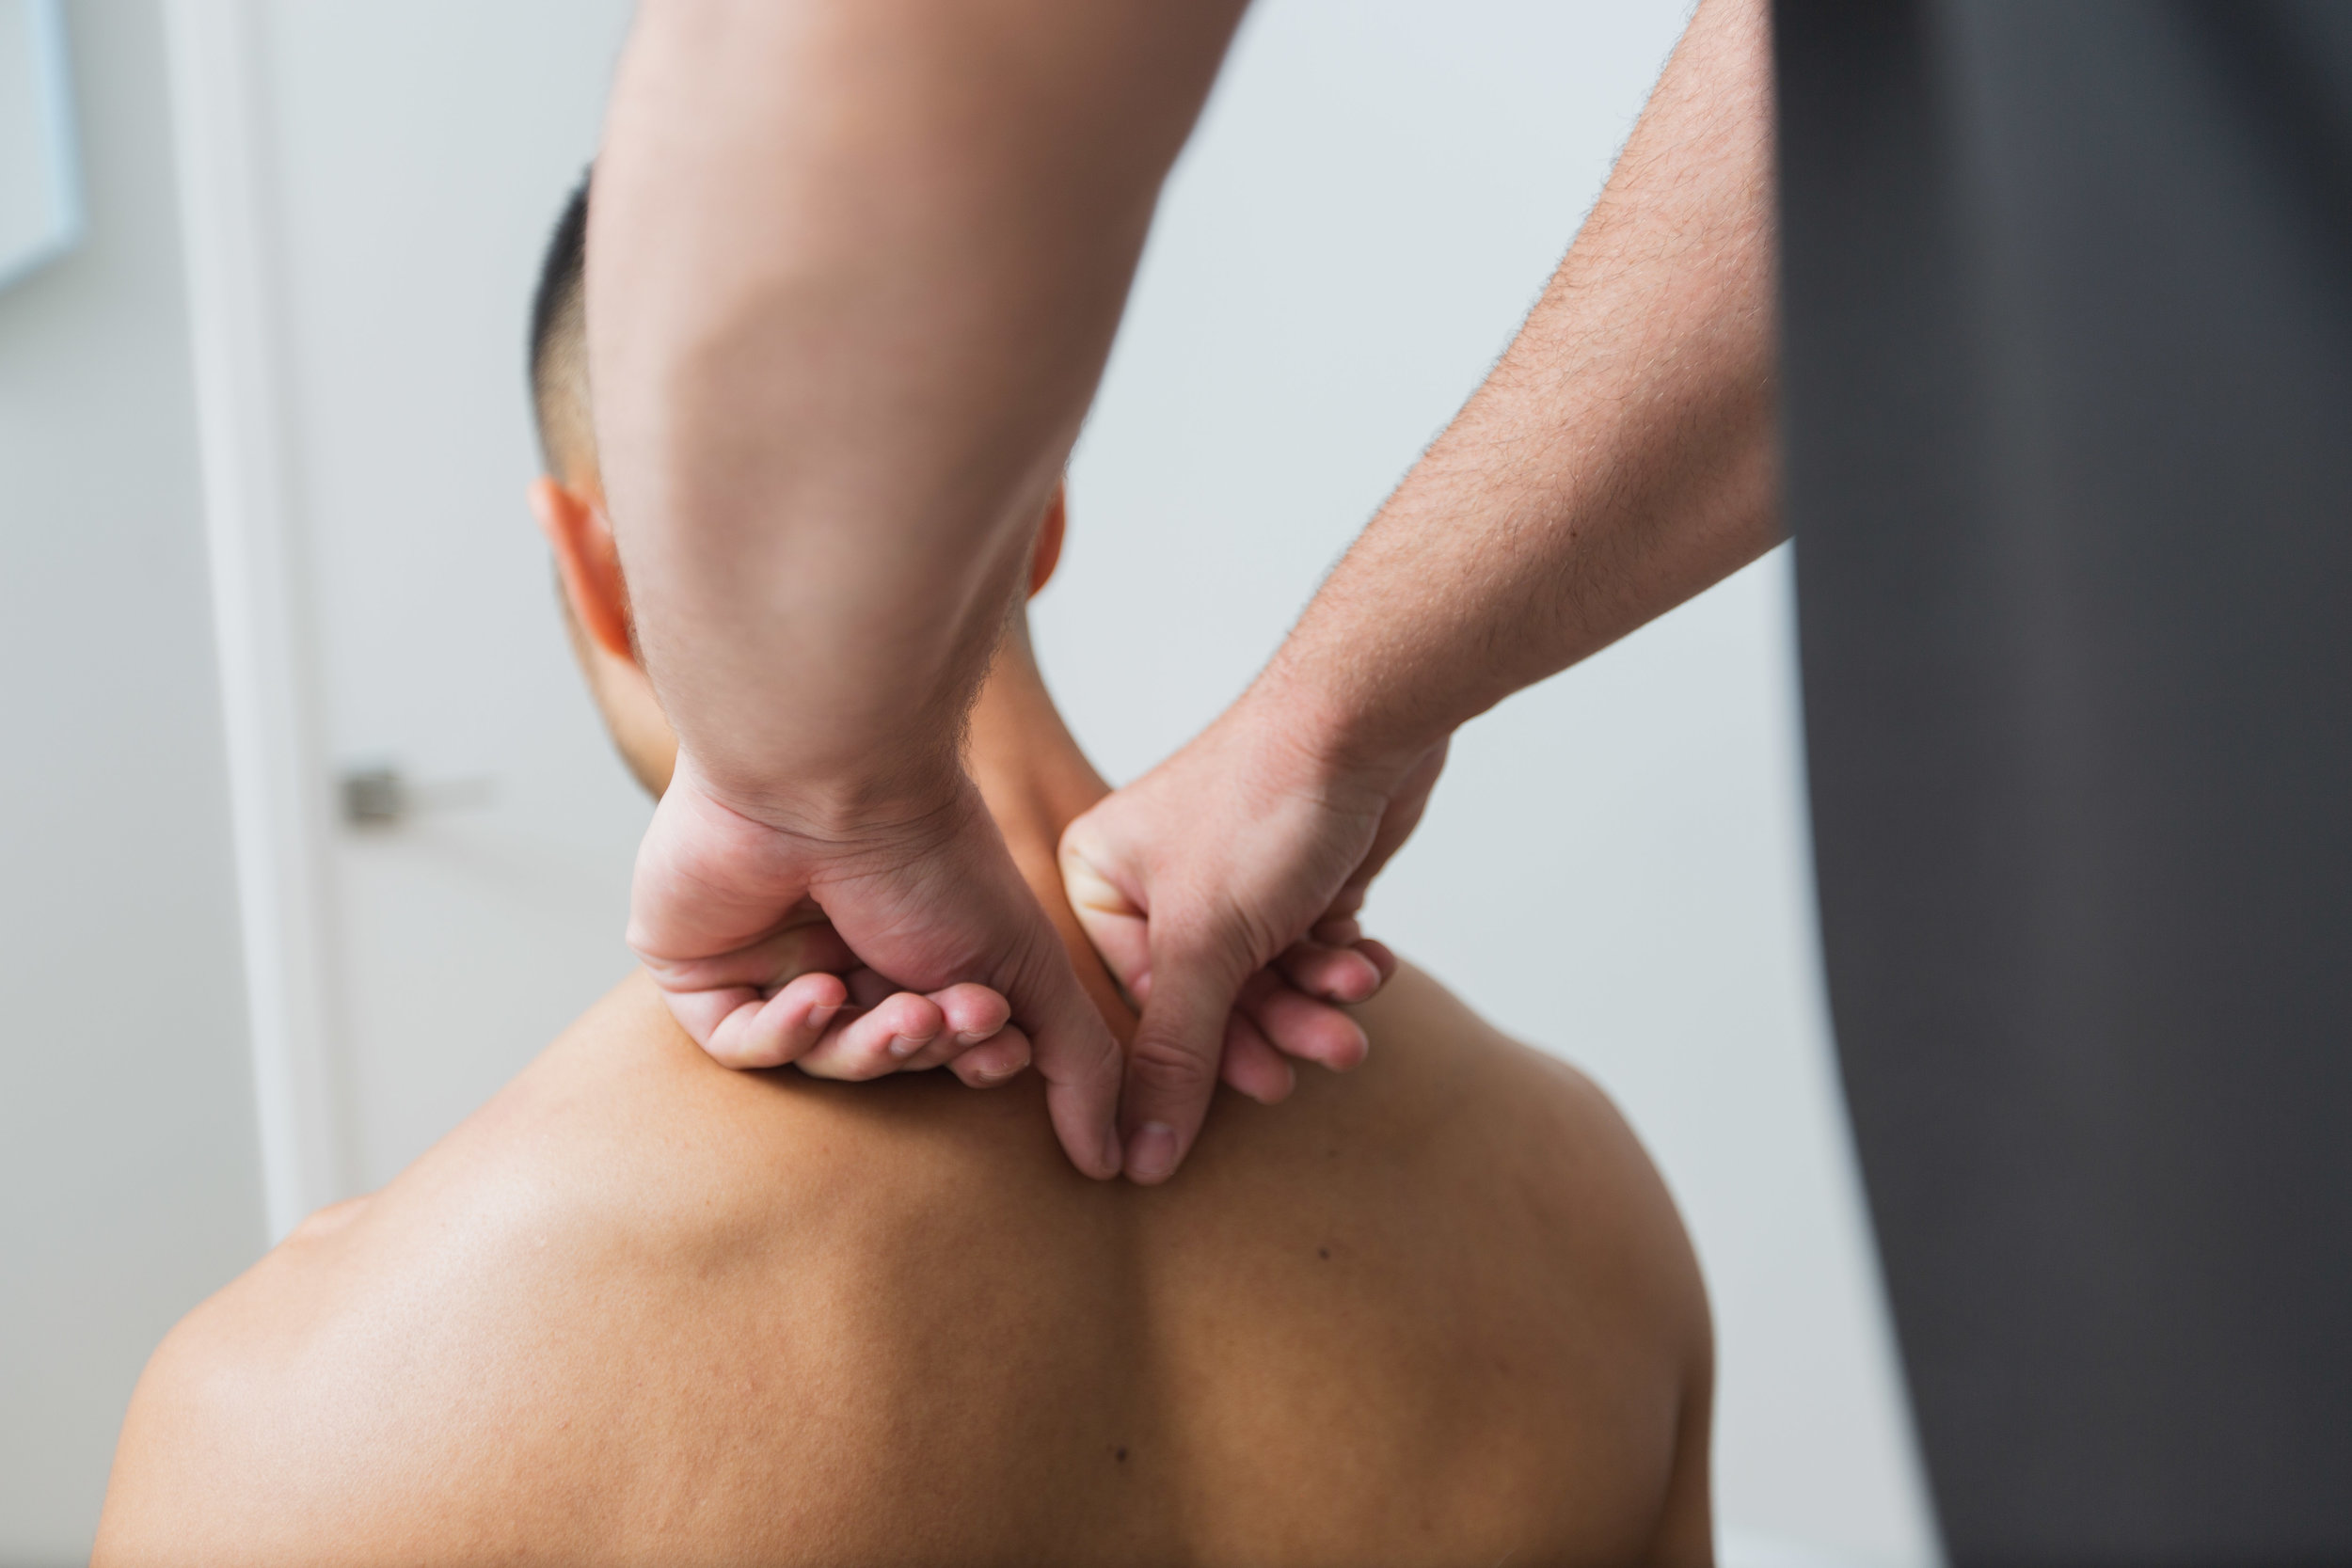 The release technique commences where the neck and shoulders meet, and is applied in a downward motion to increase the length of the Superficial Back Line.